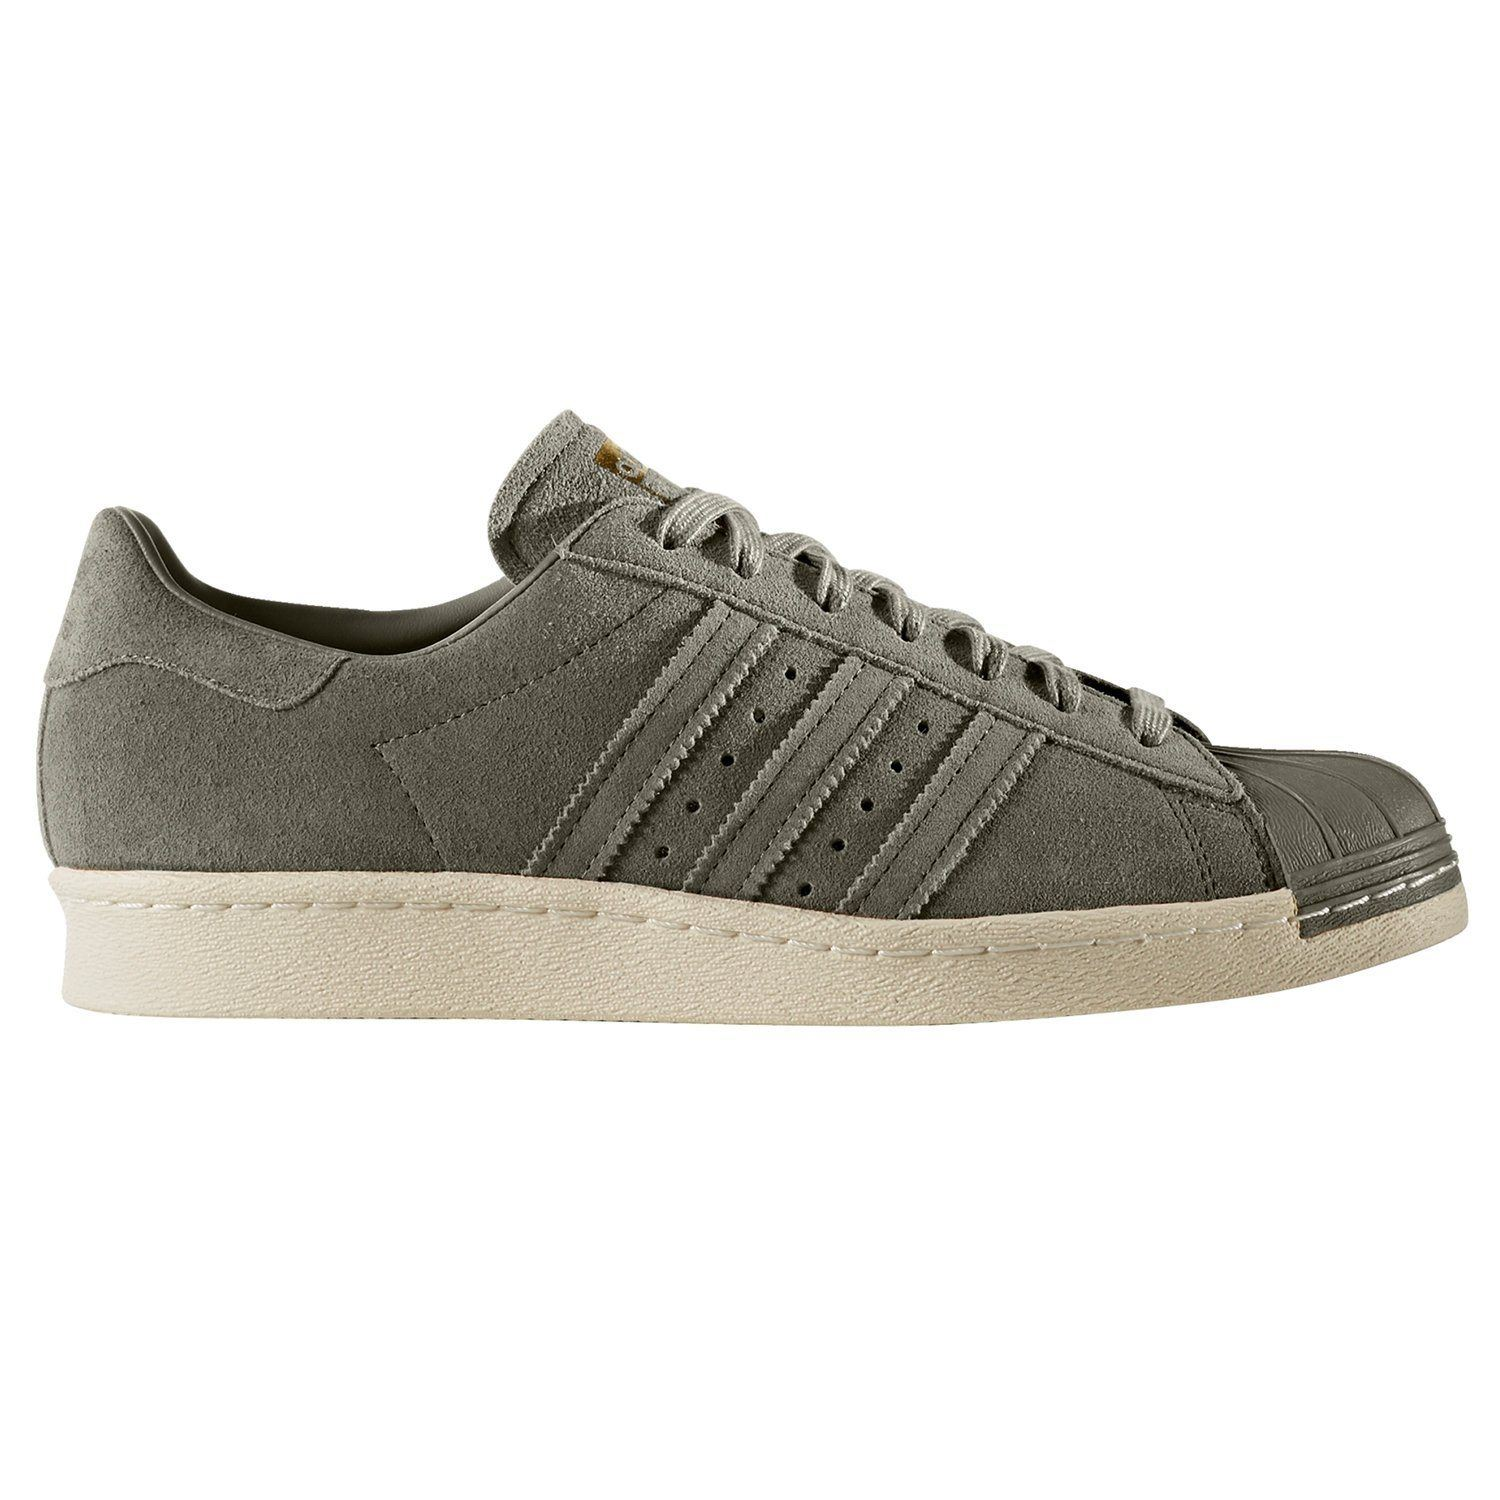 pretty nice c0097 a86b3 RETRO SHELL TOP di ADIDAS ORIGINALS SUPERSTAR 80S formatori traccia CARGO  GREEN MEN